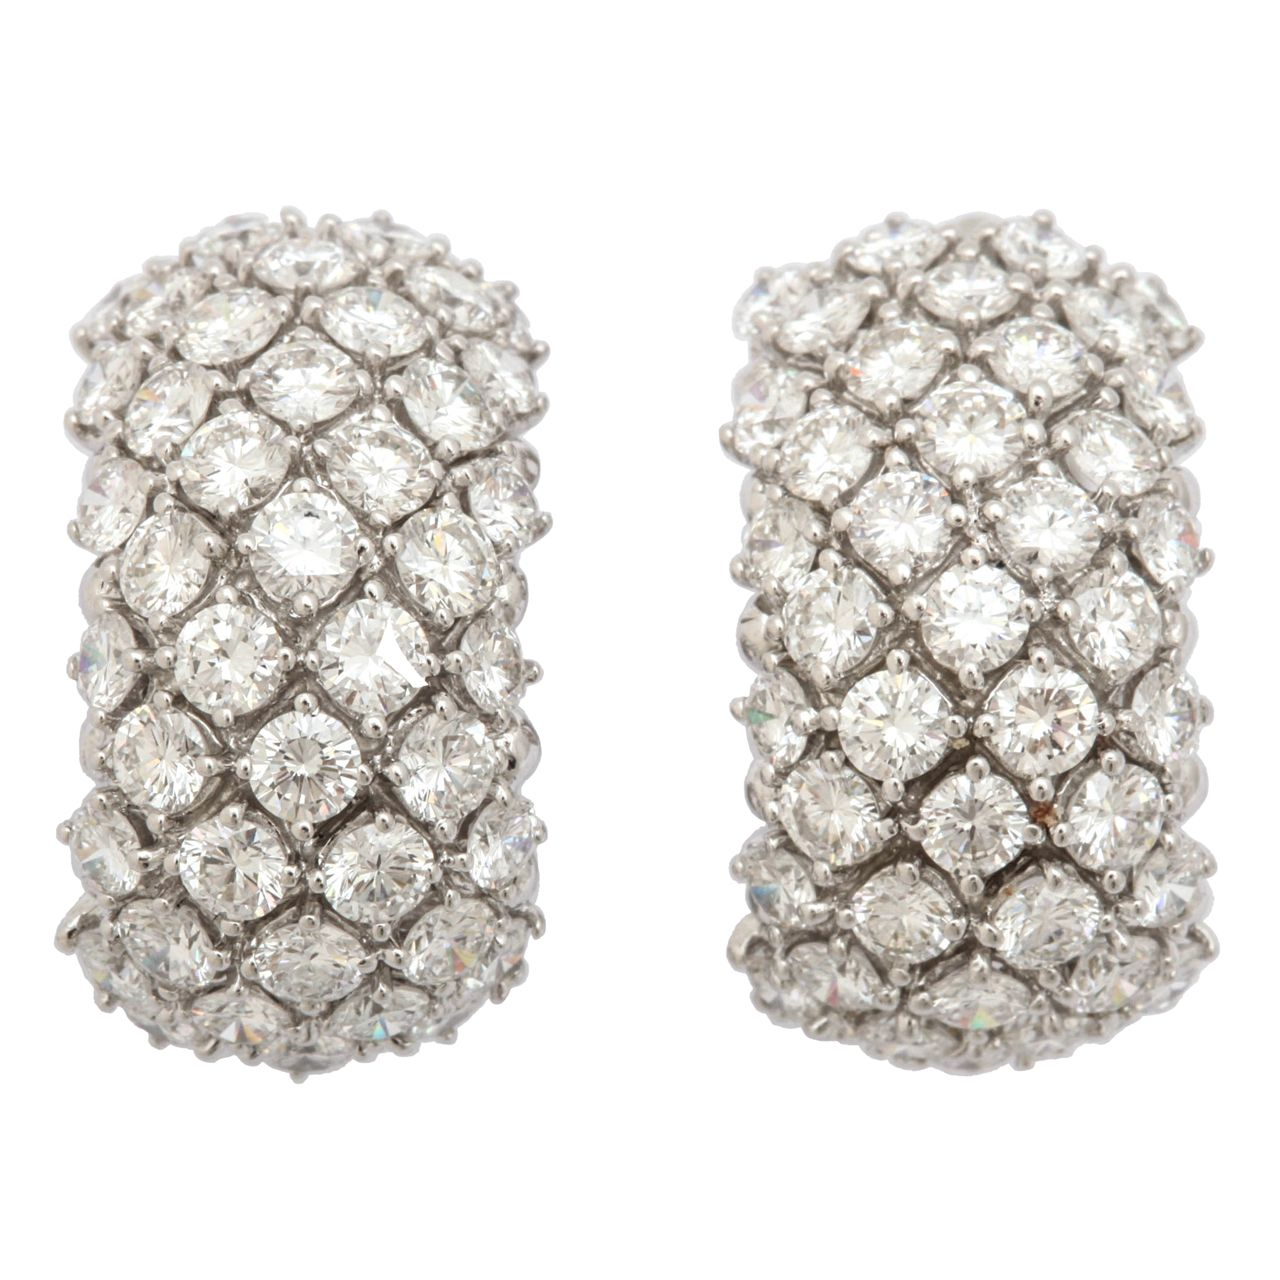 Costco Jewelry Diamond Earrings